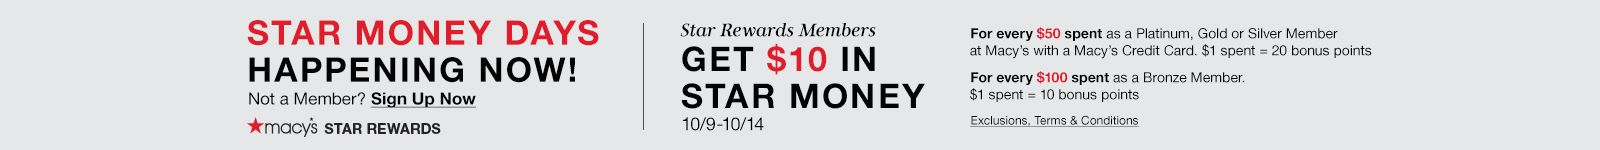 Star Money Days Happening Now! Star Rewards Member get 10 dollars of star money